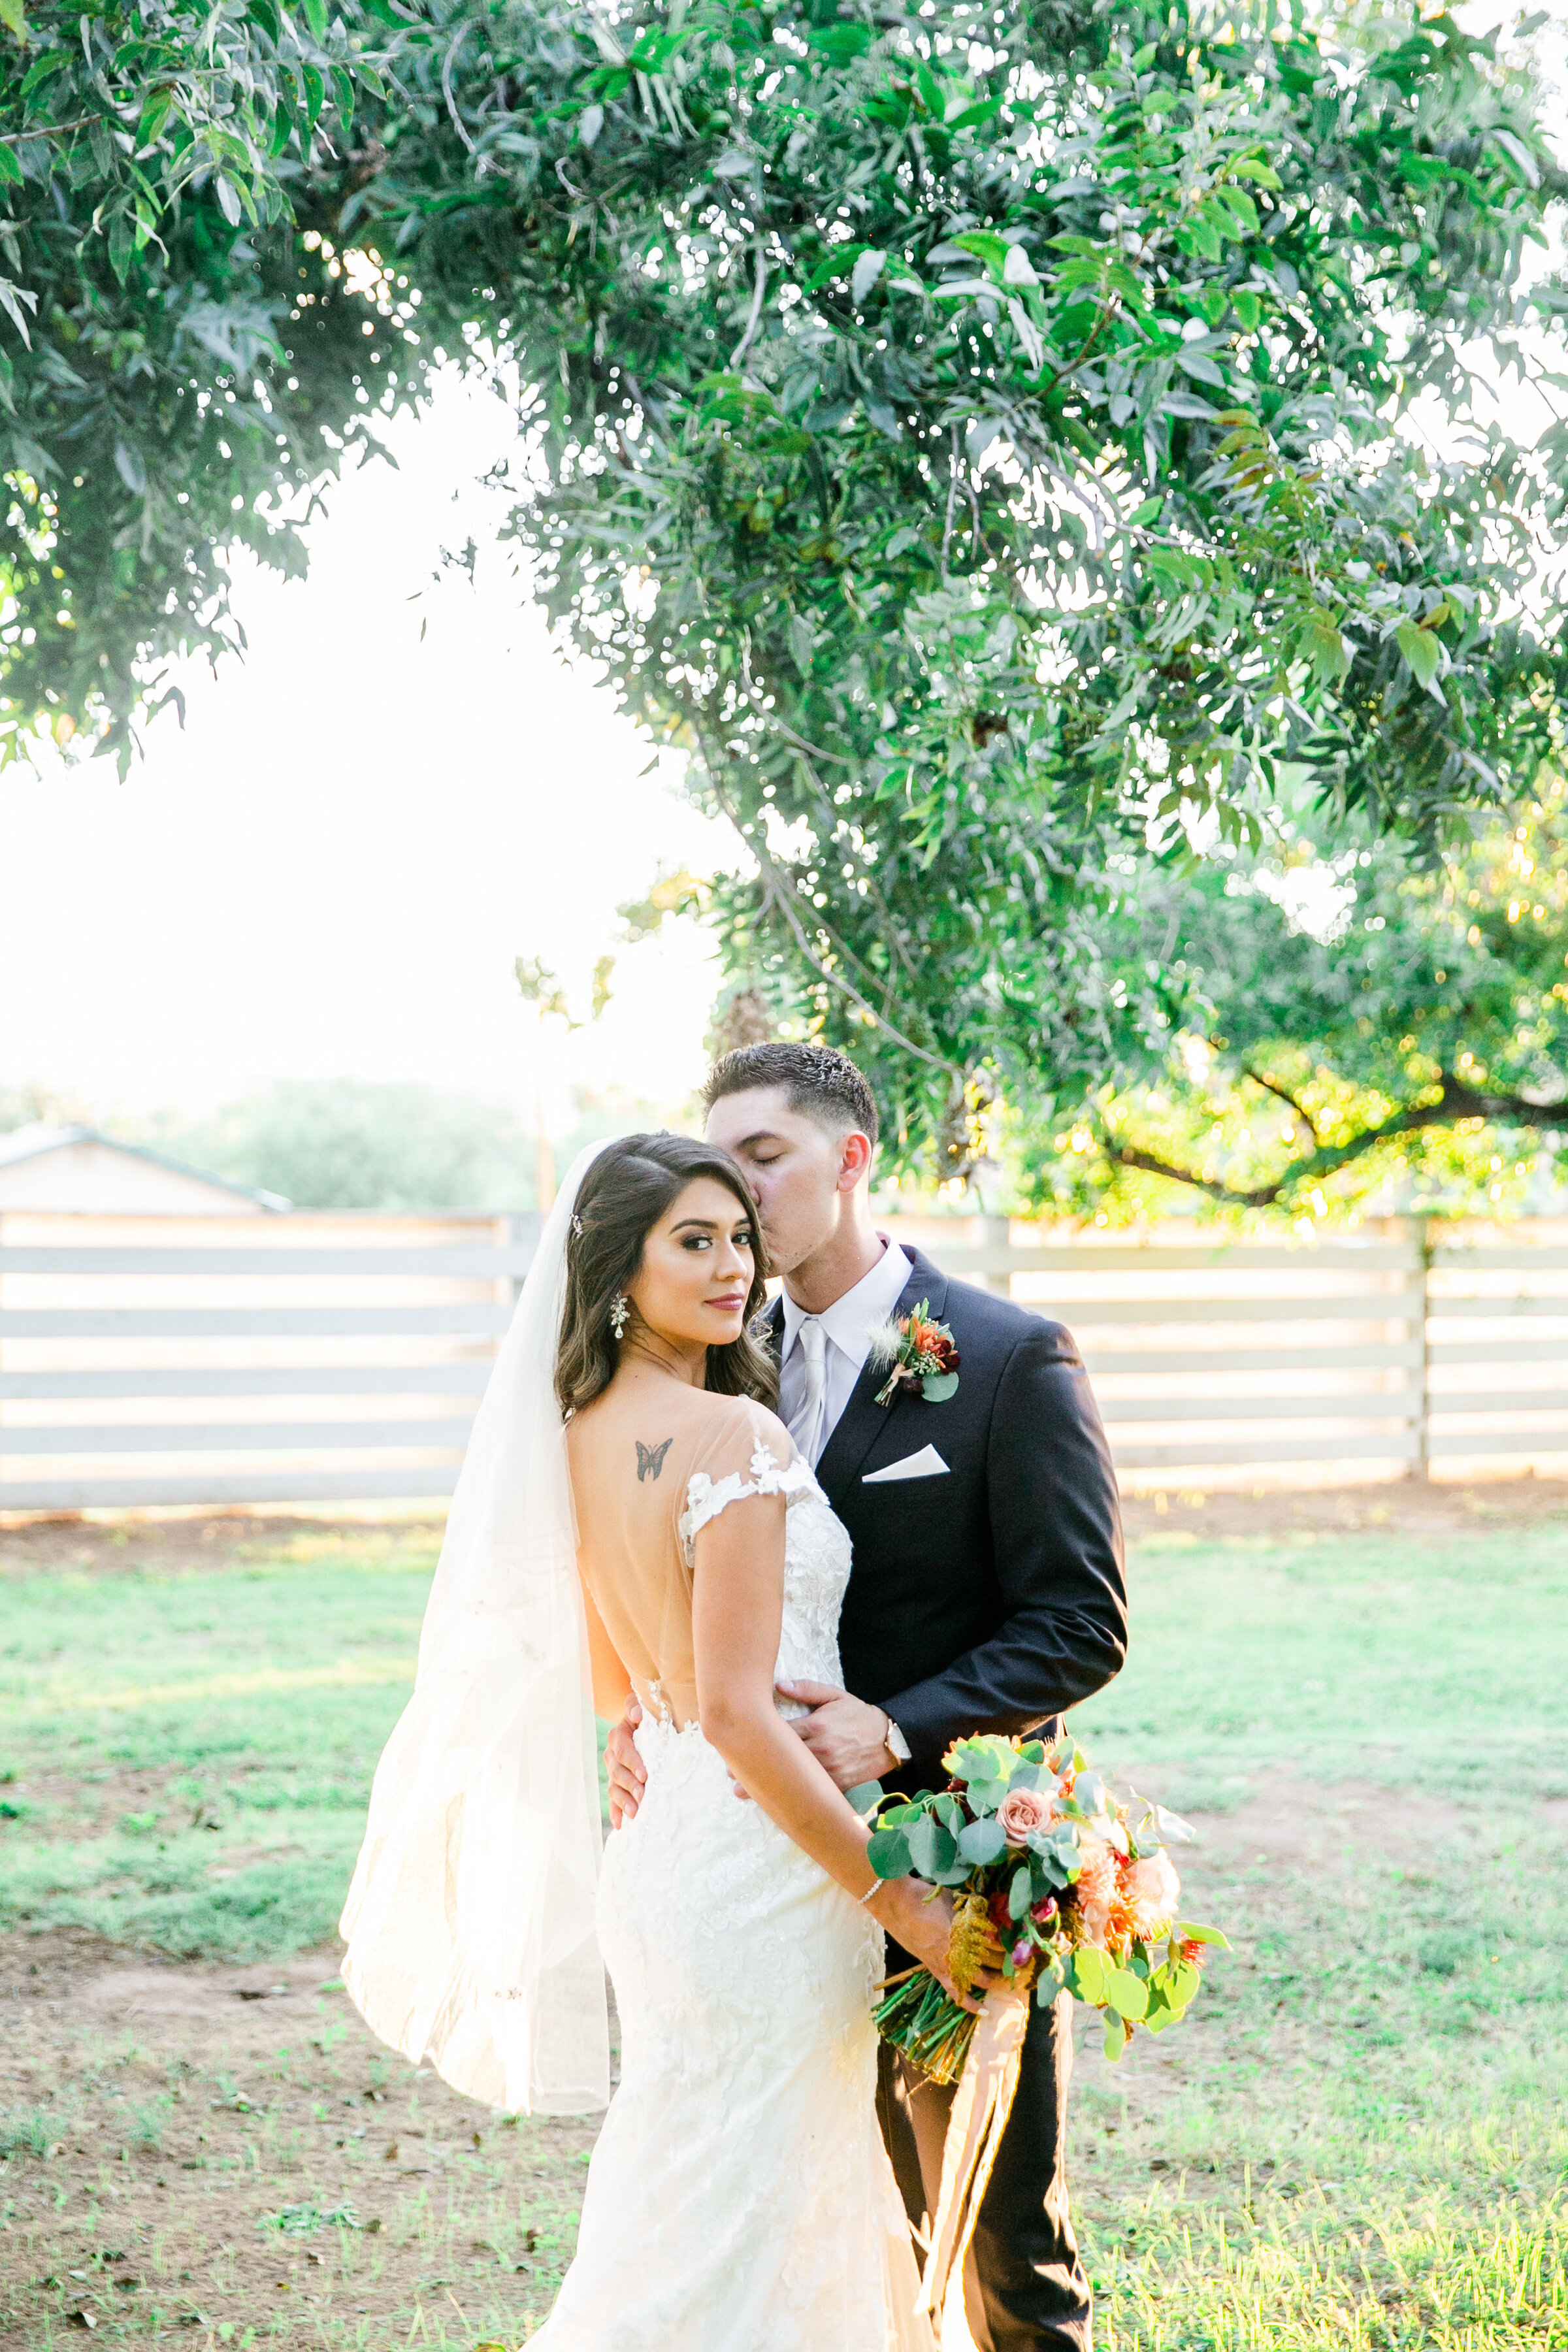 Karlie Colleen Photography - Phoenix Arizona - Farm At South Mountain Venue - Vanessa & Robert-564